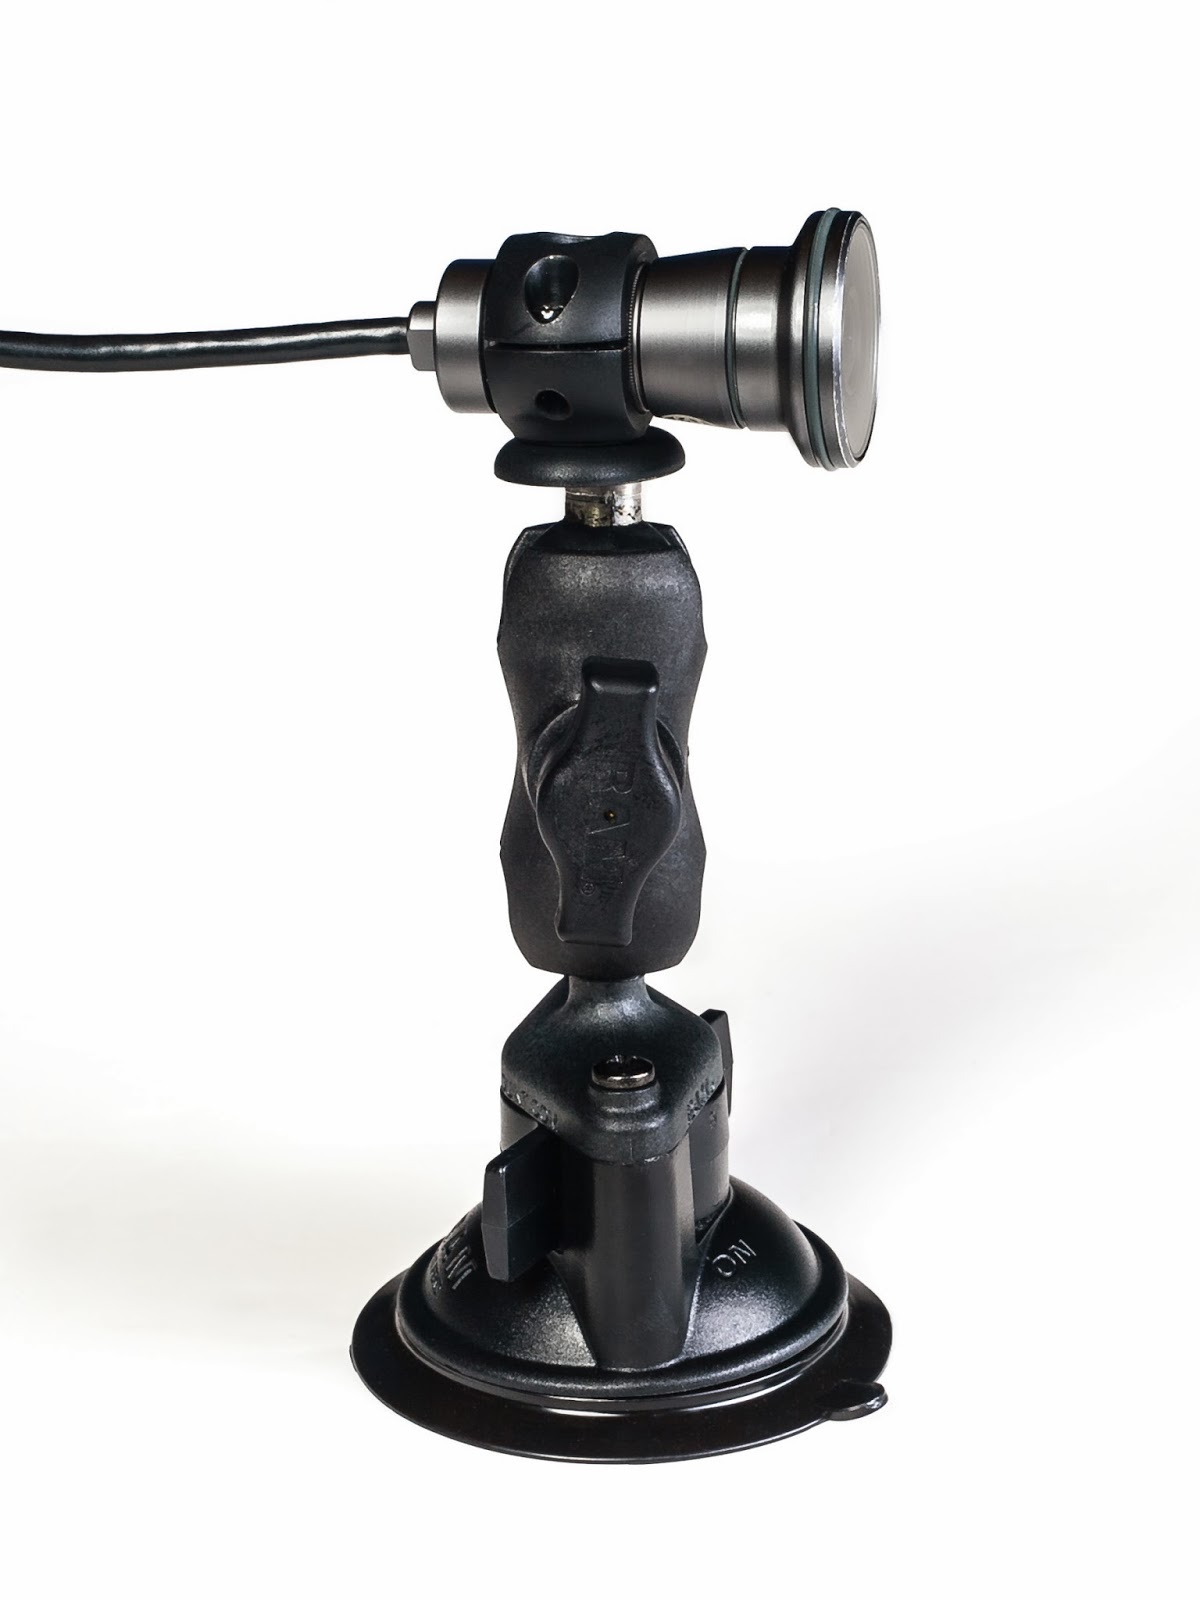 c64beef8c9 VIO POV HD Camera- No matter whether you are casting for muskies